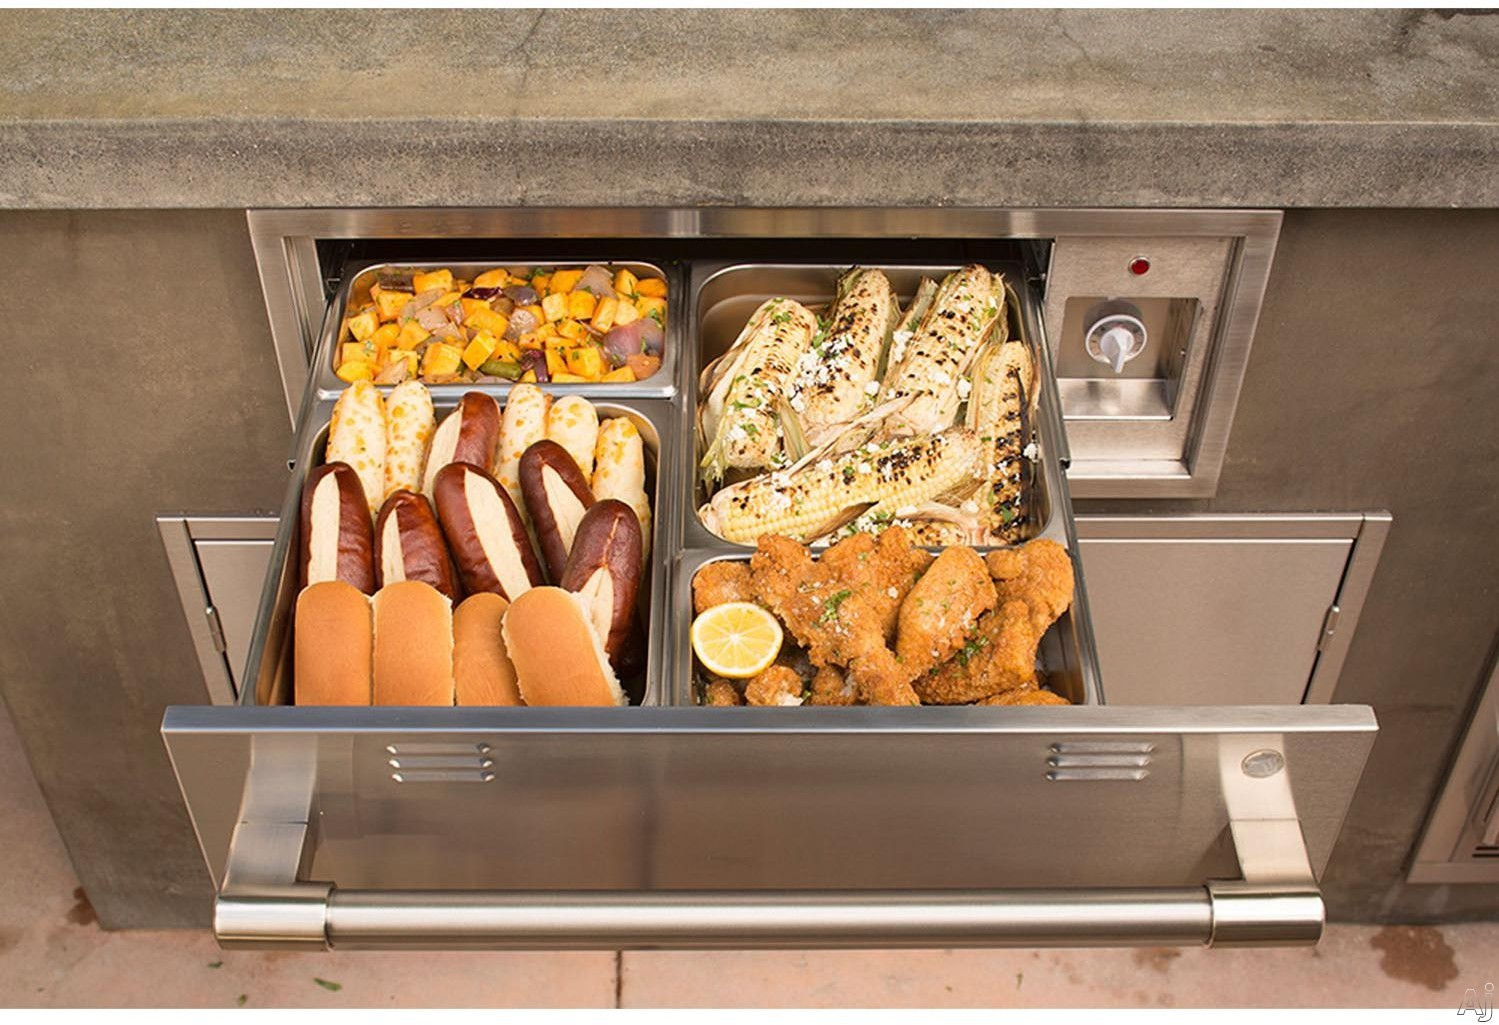 Image of Alfresco AXEWD30 30 Inch Built-In Electric Warming Drawer